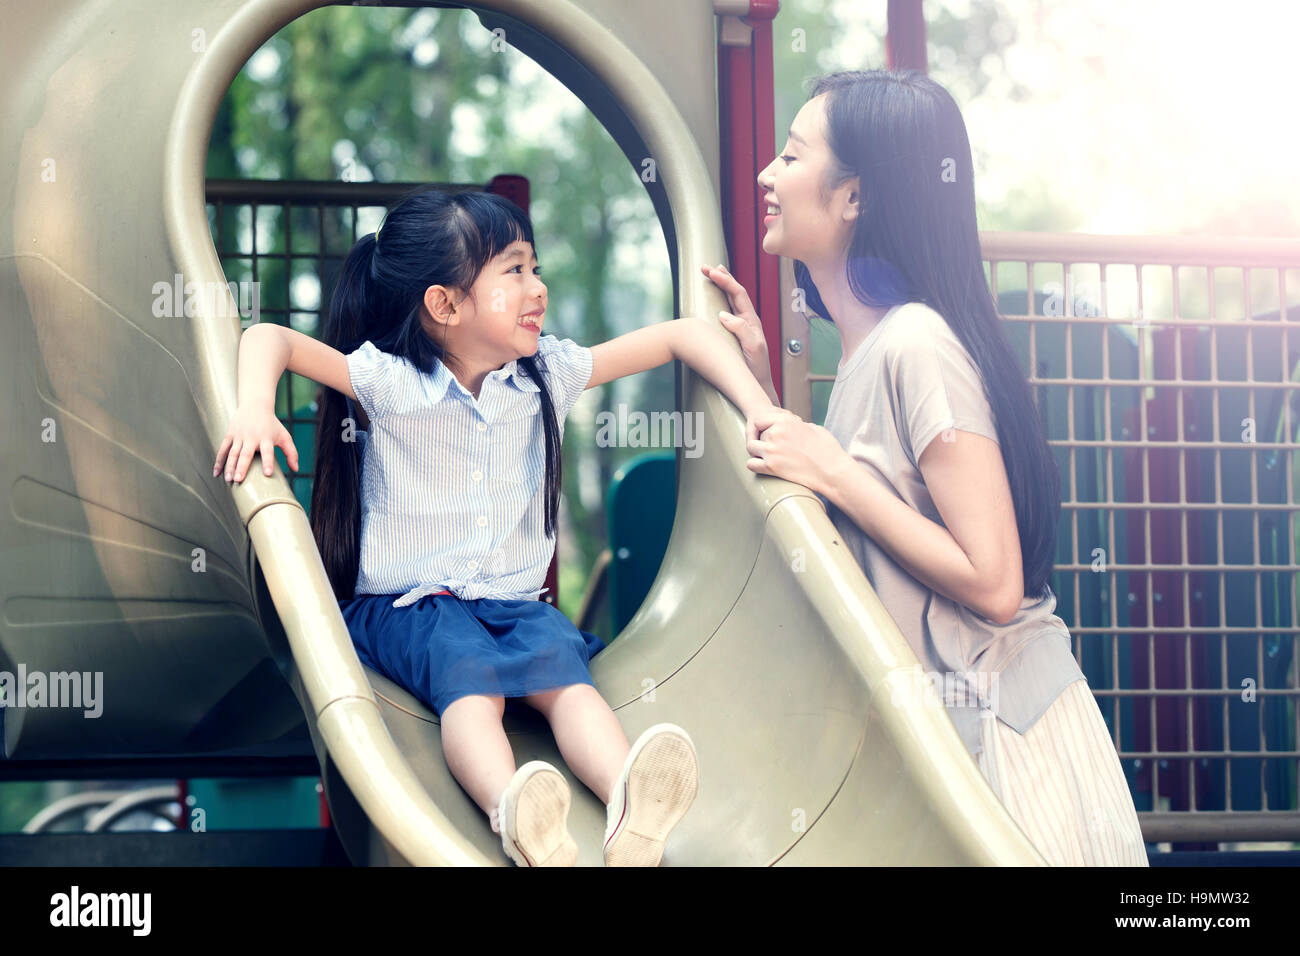 Mother to accompany the girl slide - Stock Image